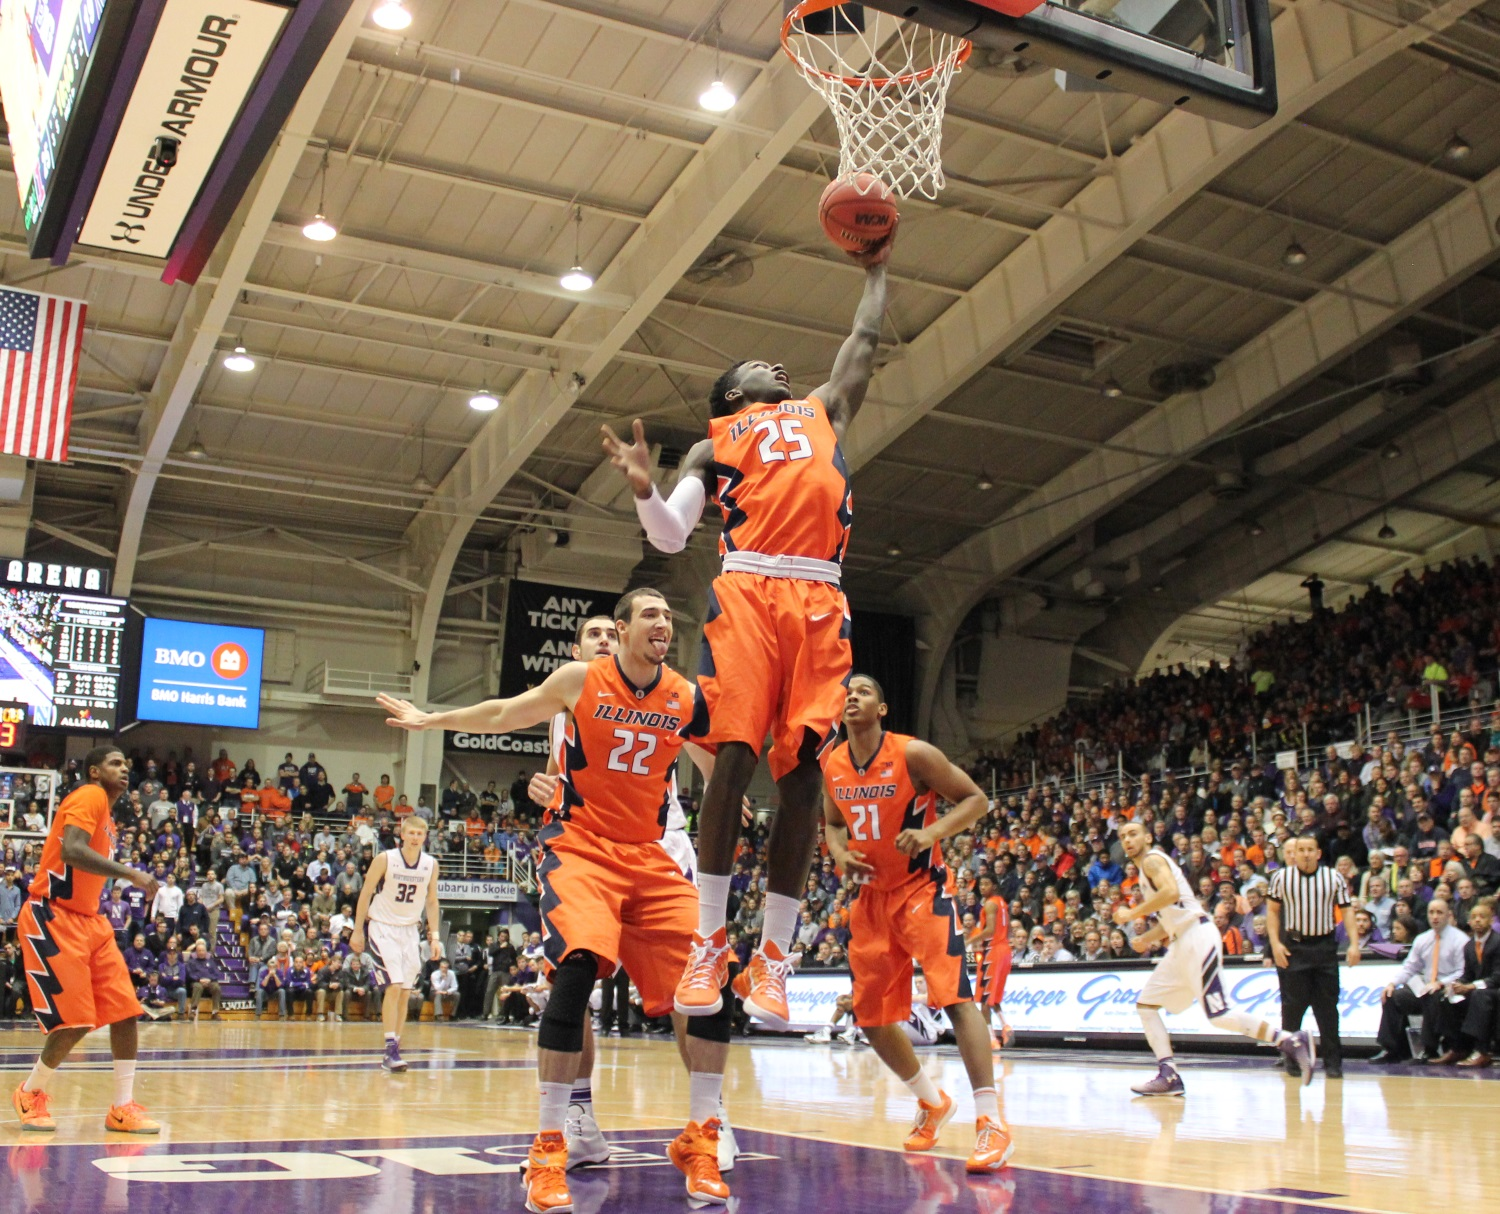 Kendrick Nunn spears a rebound against Northwestern in Evanston